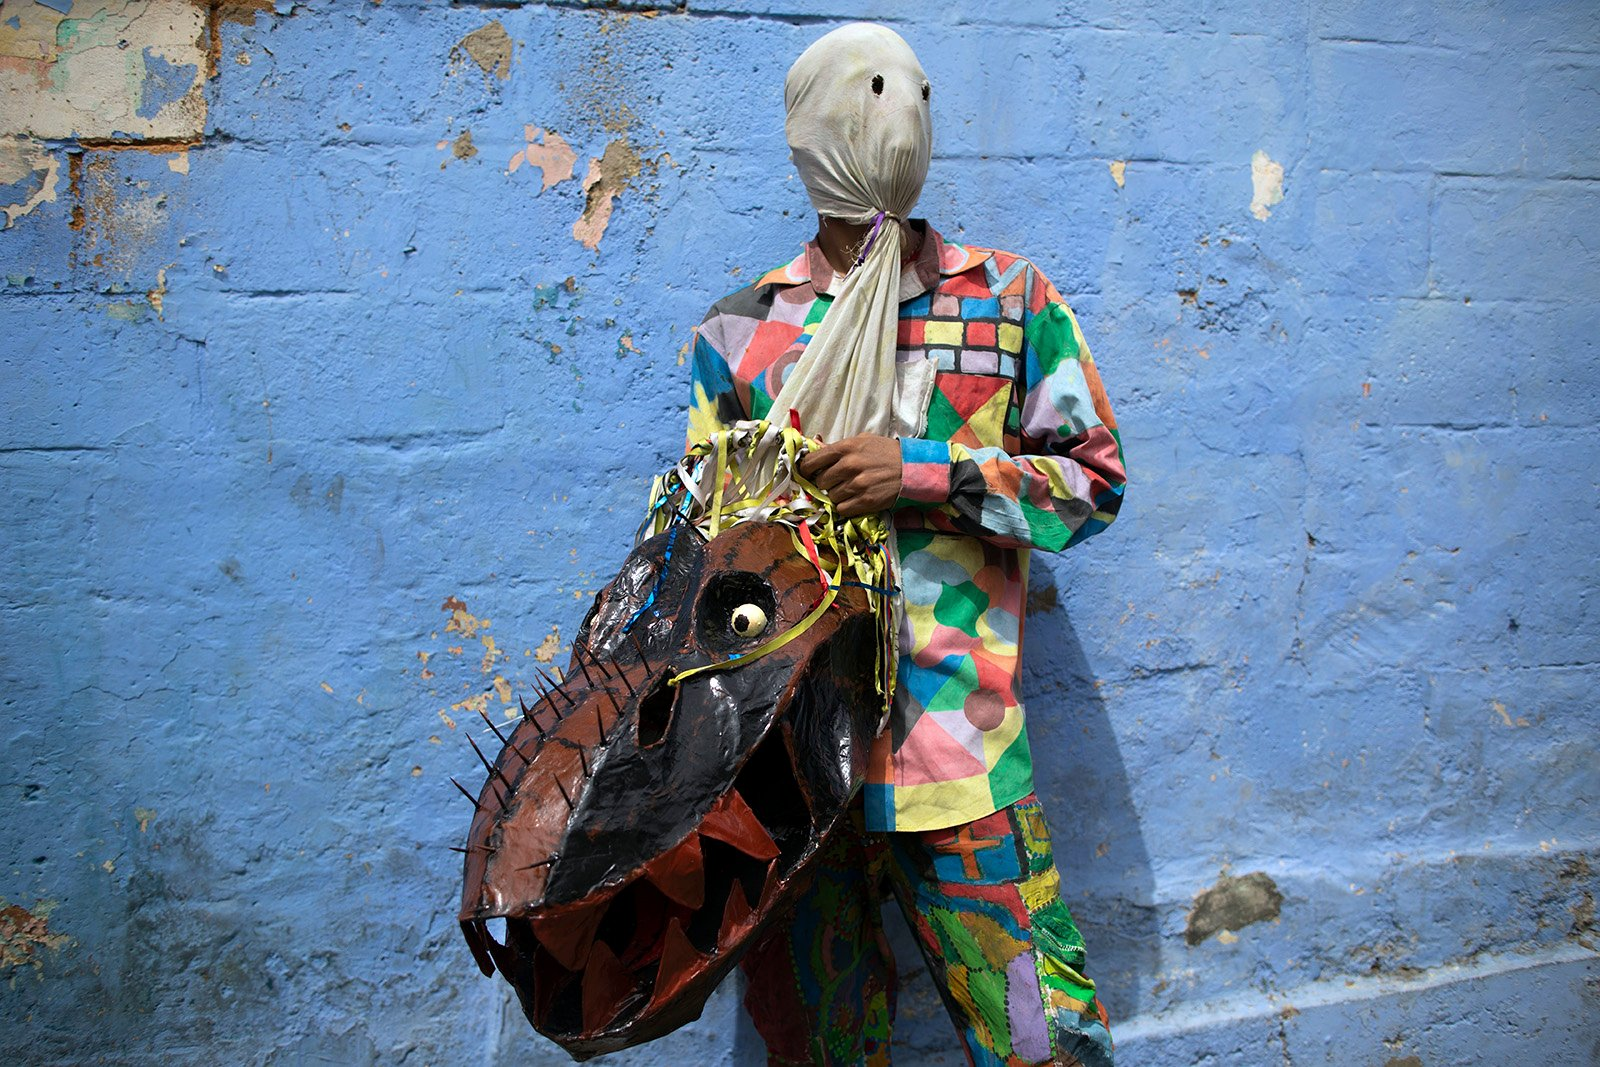 A man dressed in a devil costume holds his mask during a celebration marking the Catholic holiday of Corpus Christi in Naiguata, Venezuela, Thursday, June 3, 2021. Carrying masks of animals and sea monsters, residents of all ages dance in the ritual known as Dancing Devils, which symbolizes the triumph of good over evil. (AP Photo/Ariana Cubillos)